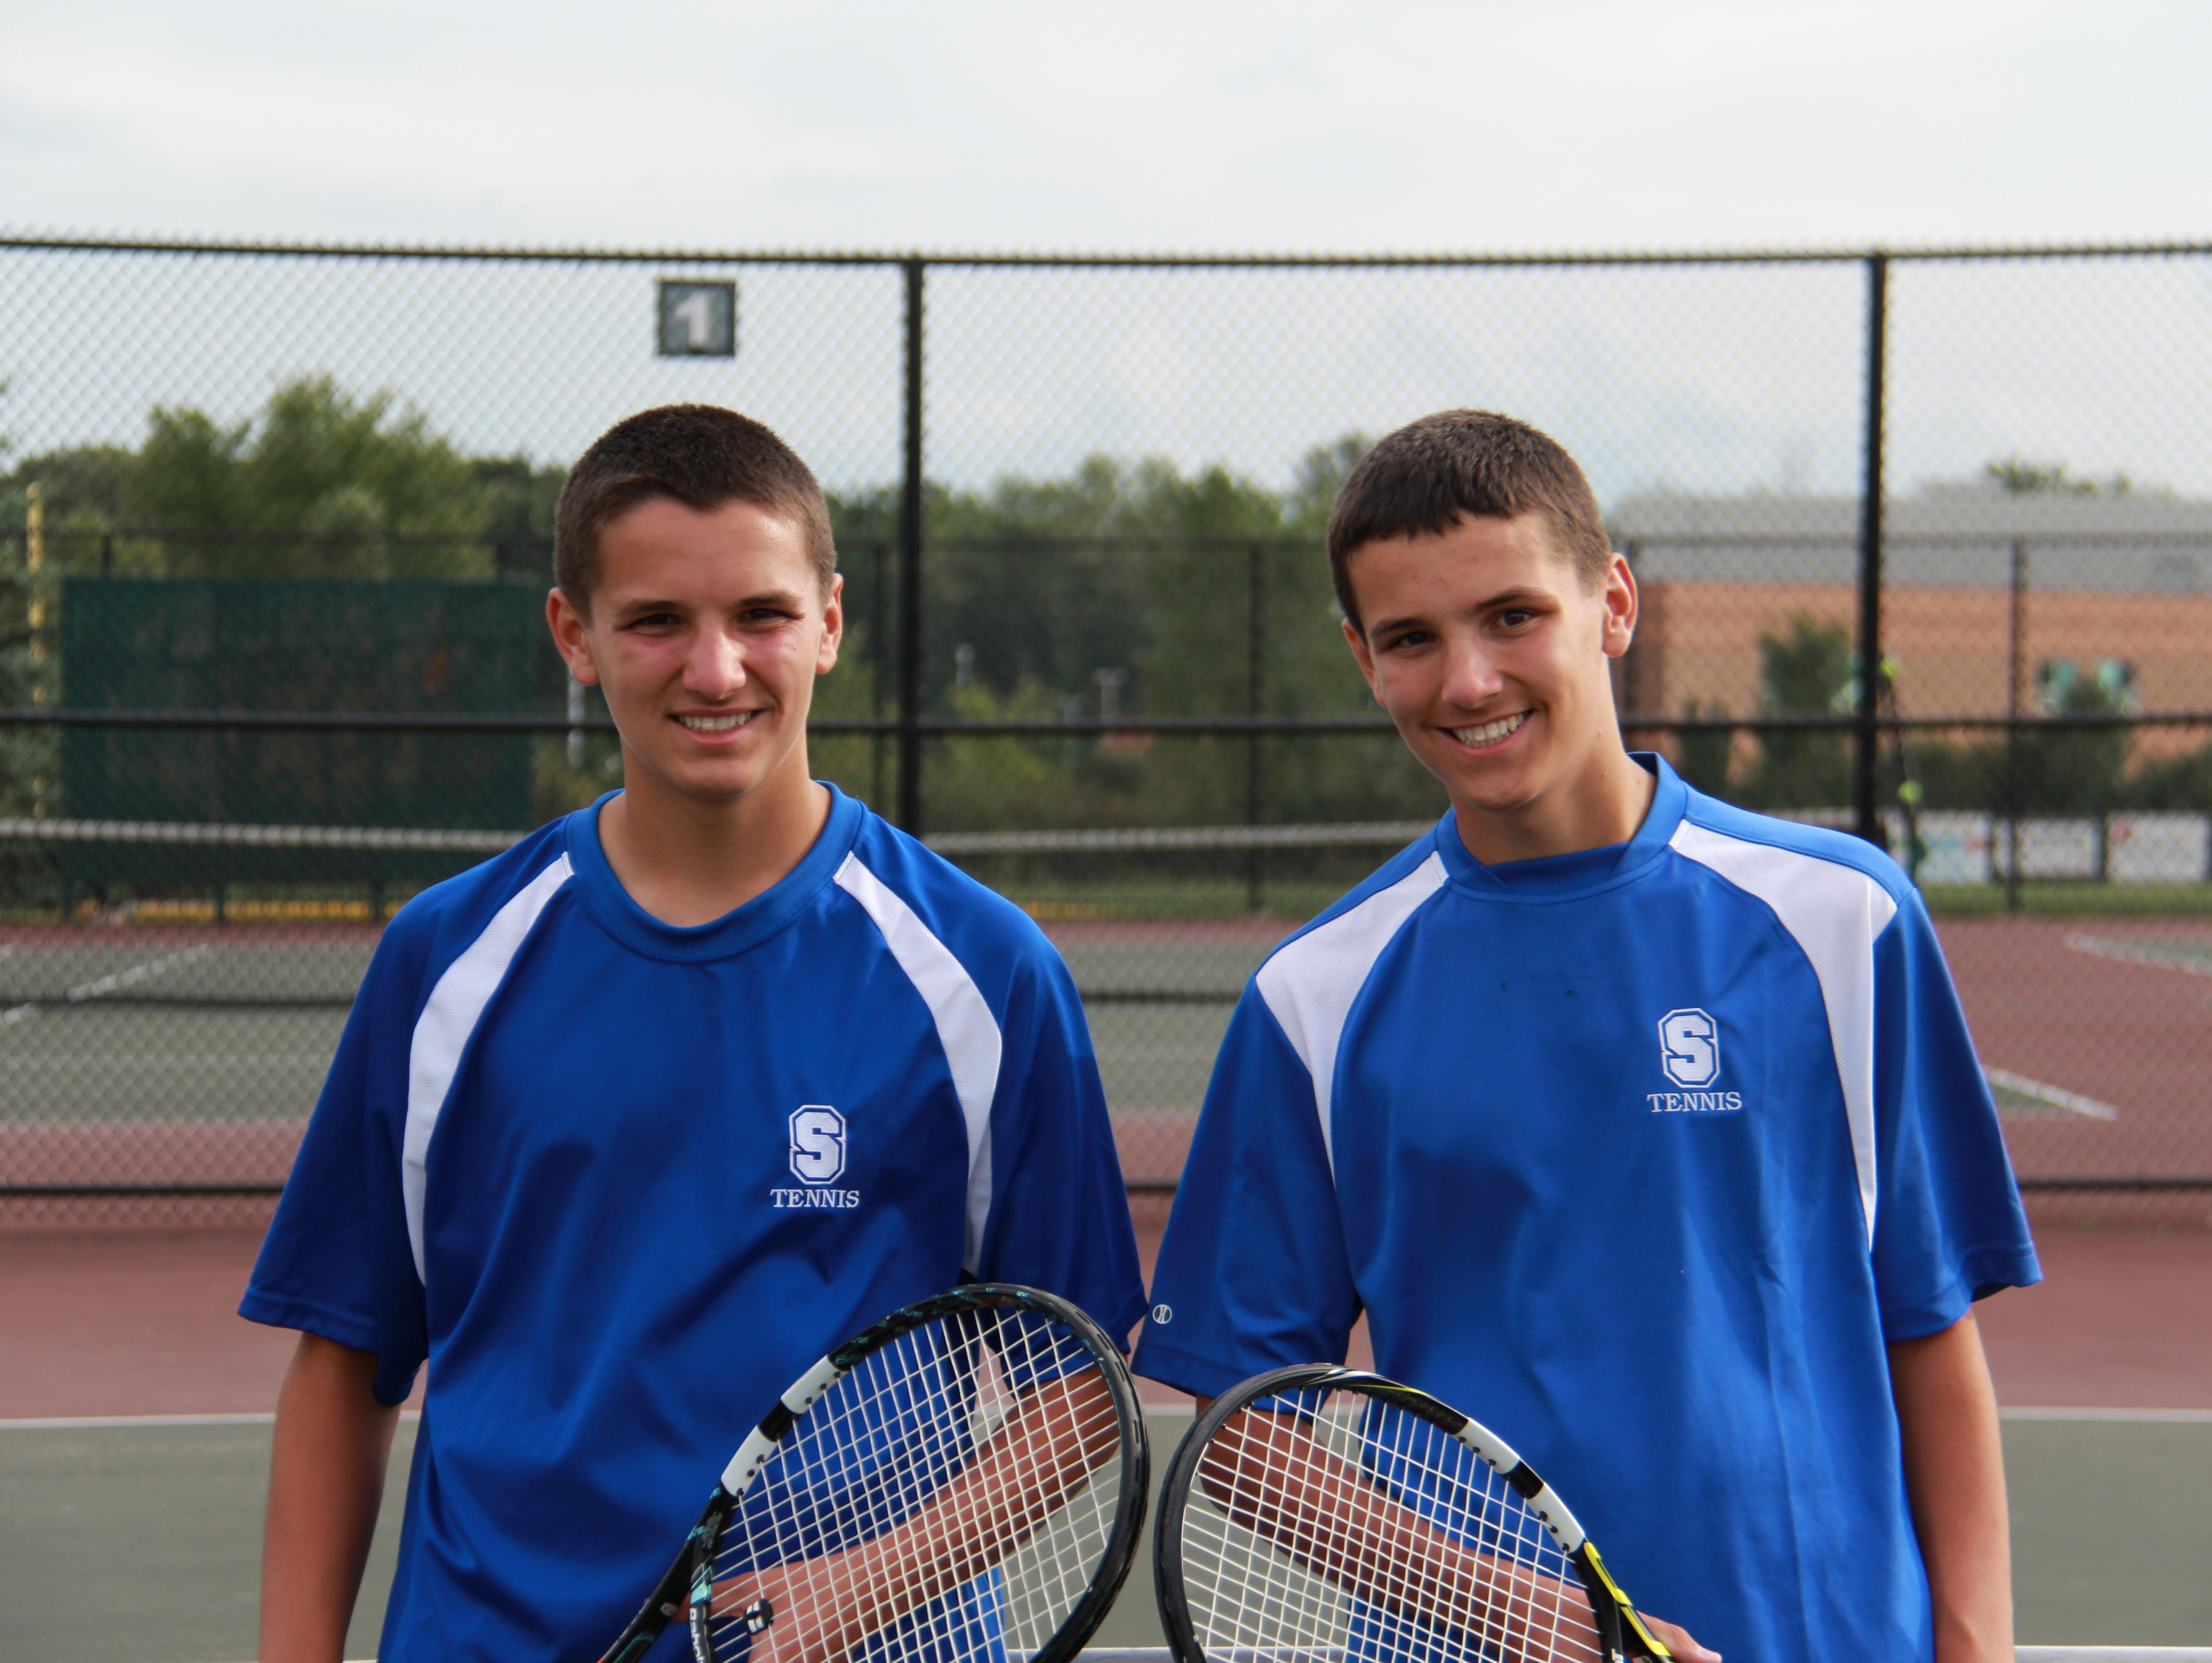 They're not yet as famous as the Bryan brothers, but Salem junior twins Caden (left) and Conor (right) Sweet are making strides.